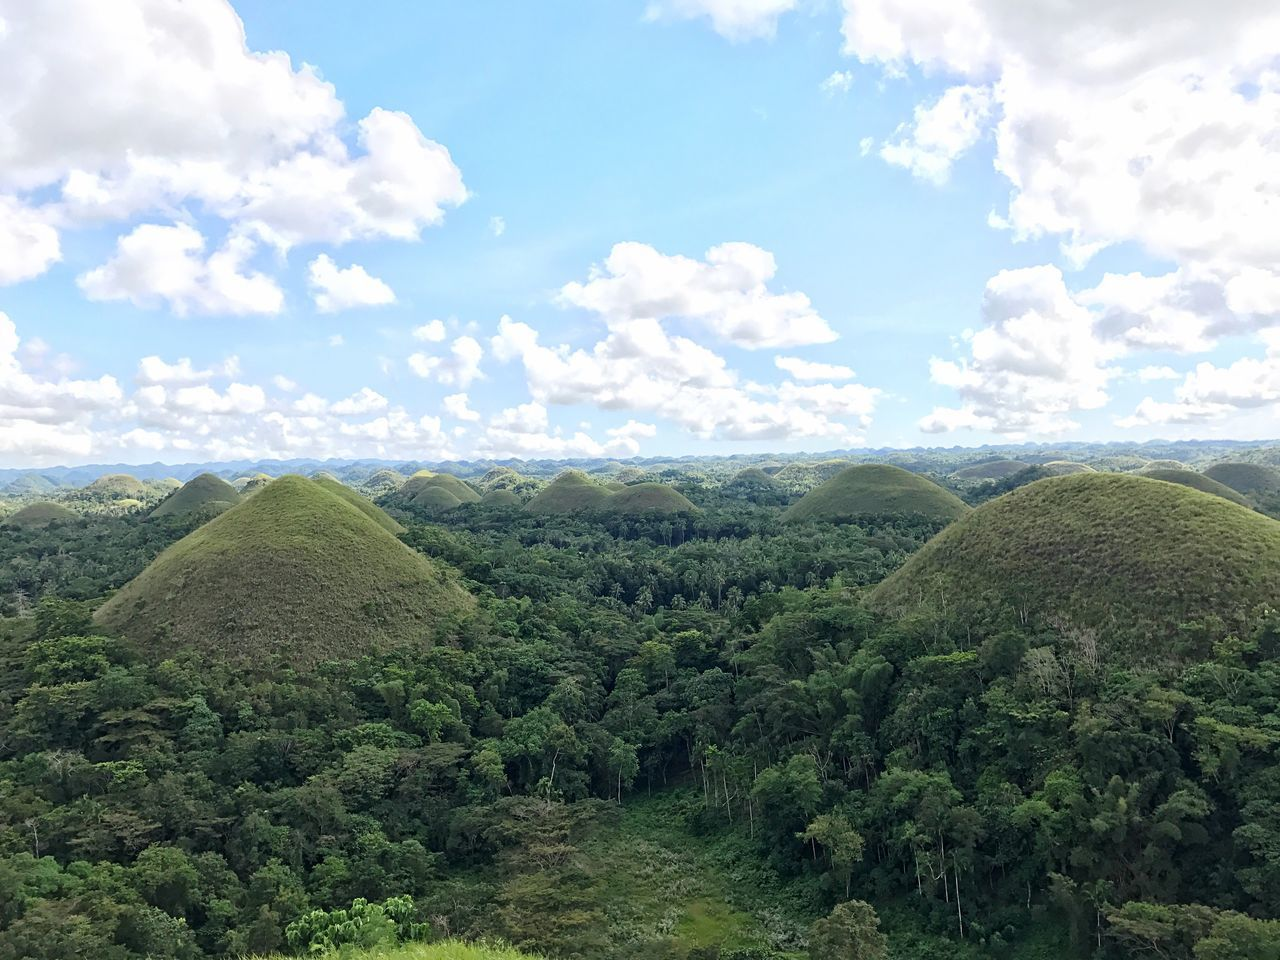 Scenics Landscape Nature Beauty In Nature Field Growth Green Color Chocolatehills Bohol Philippines sSkyaAgriculturetTranquil ScenefFarmtTranquilitypPlantationlLush FoliagetTreeoOutdoorsnNo PeopleiIdylliccCloud - Sky